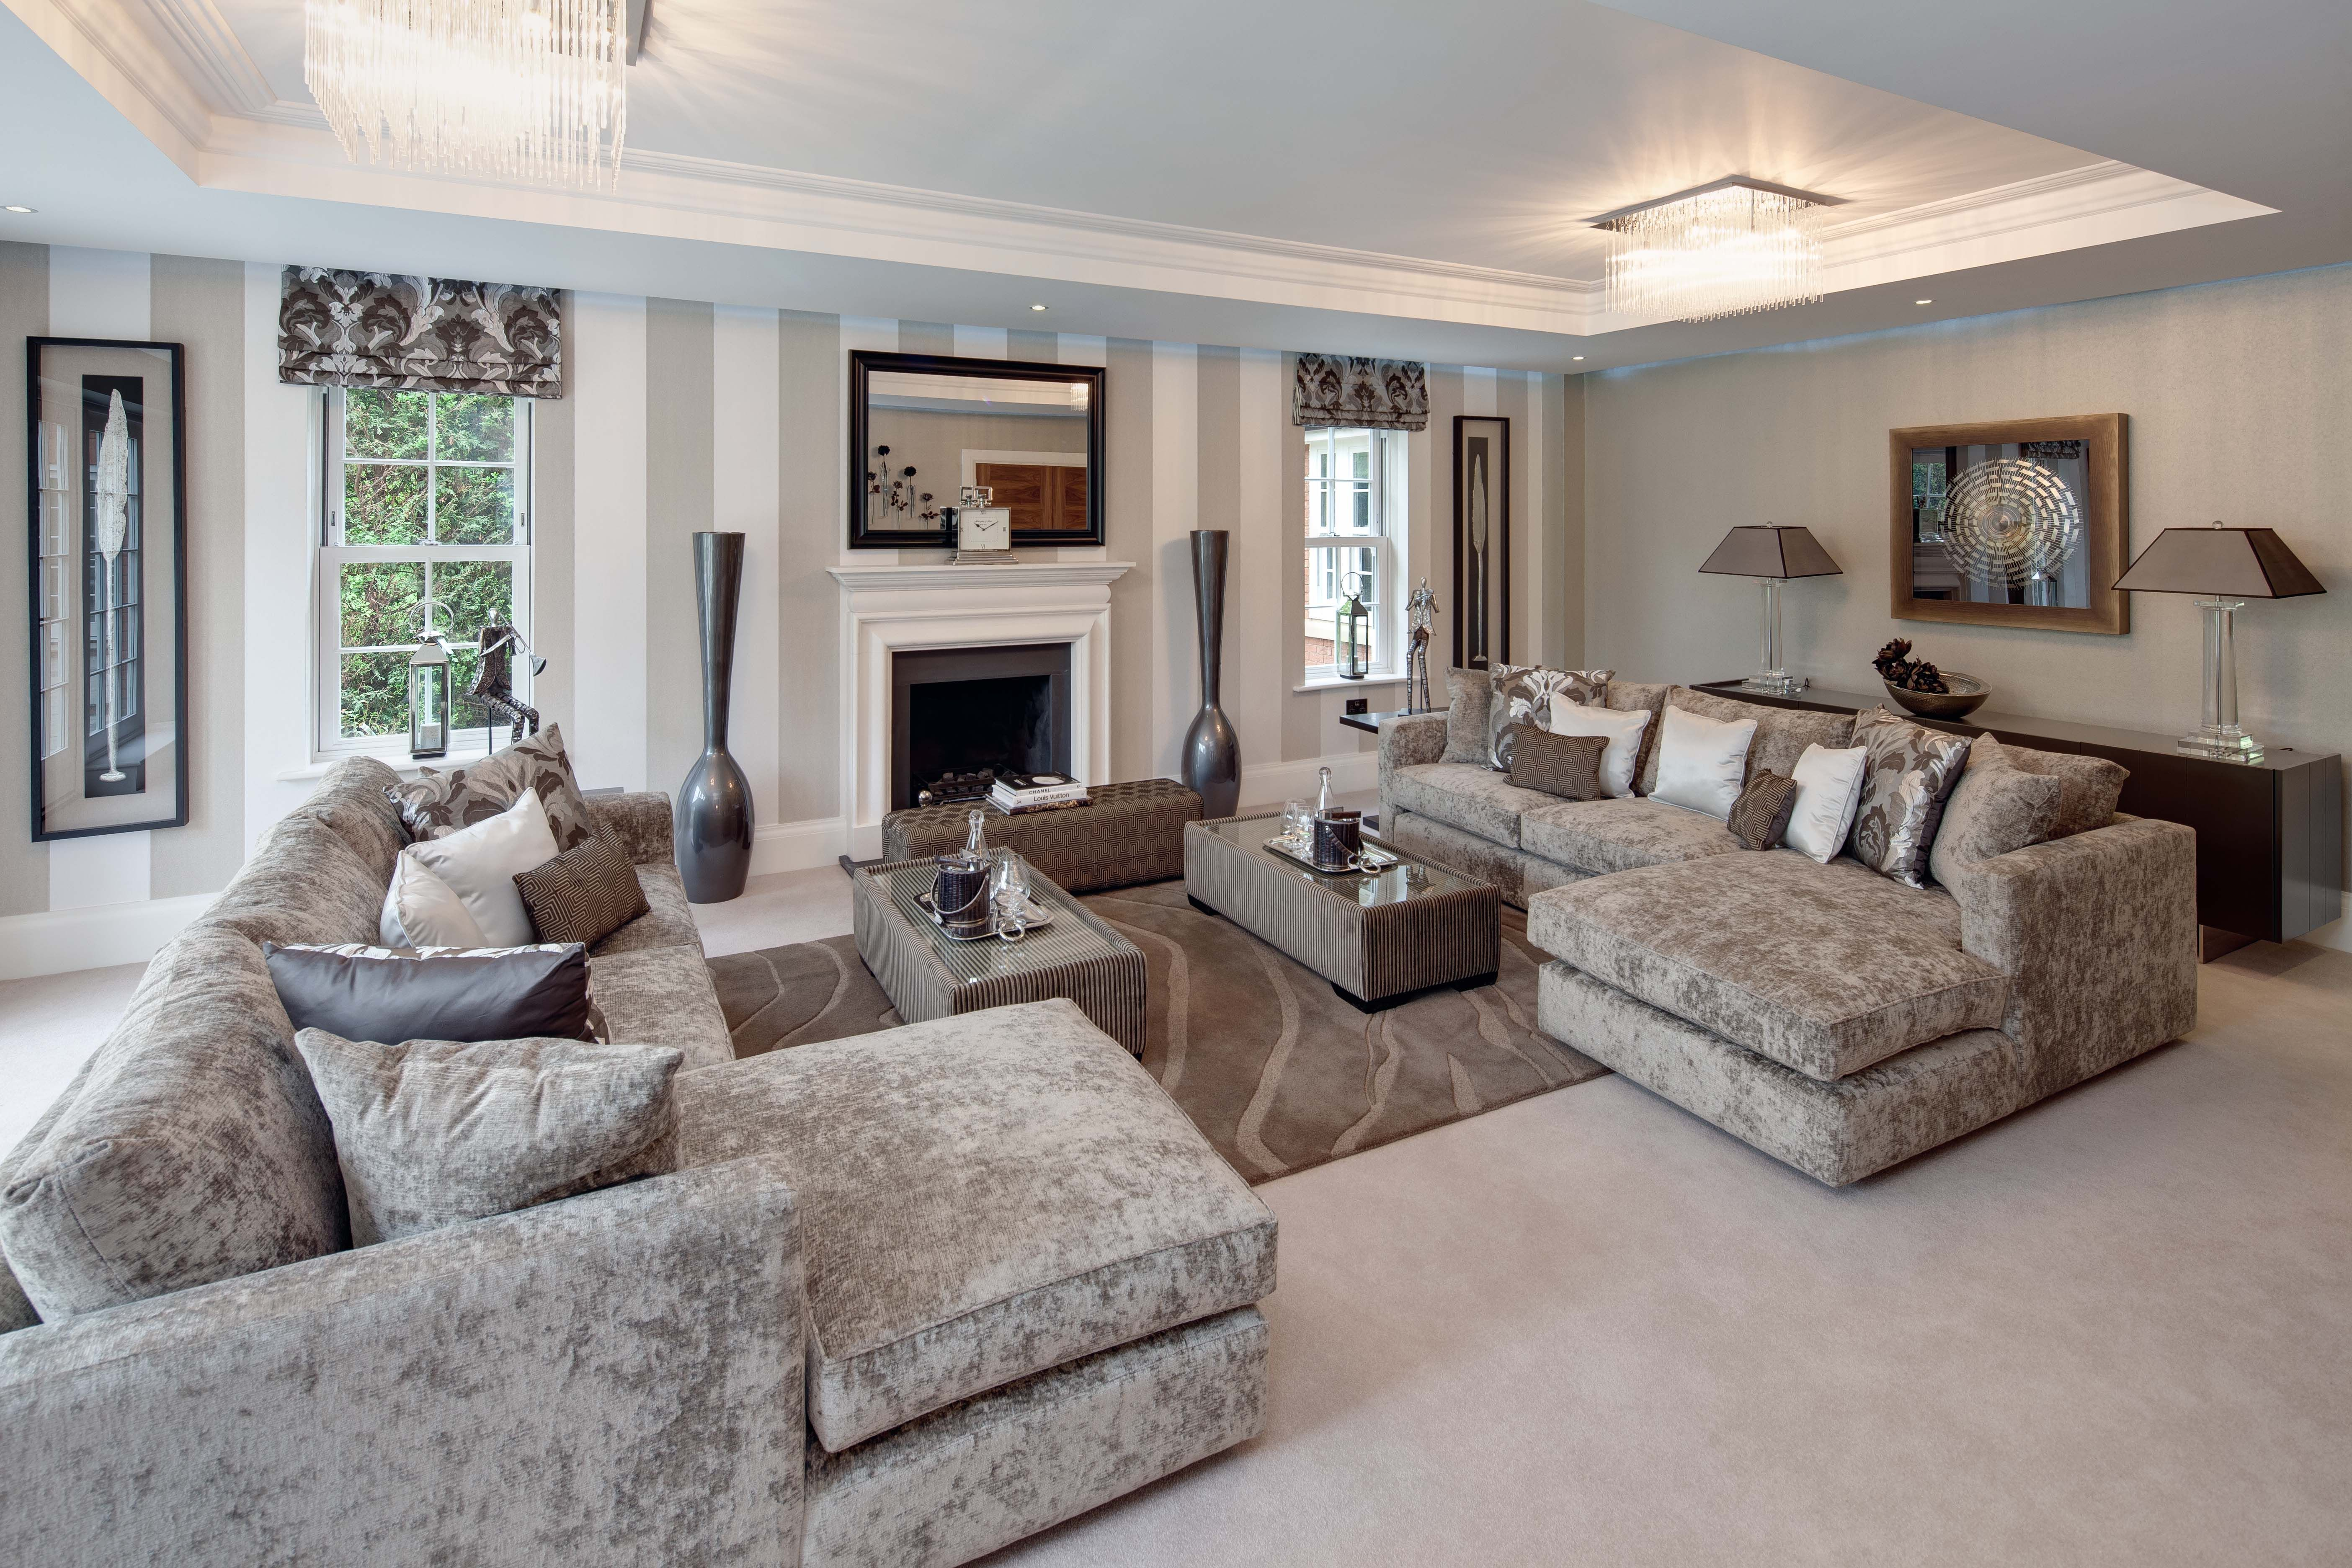 Formal Living Room With Detailed Coffer Ceiling And Taupe Mushroom Colour Tones Formal Living Room Designs Taupe Living Room Formal Living Room Sets